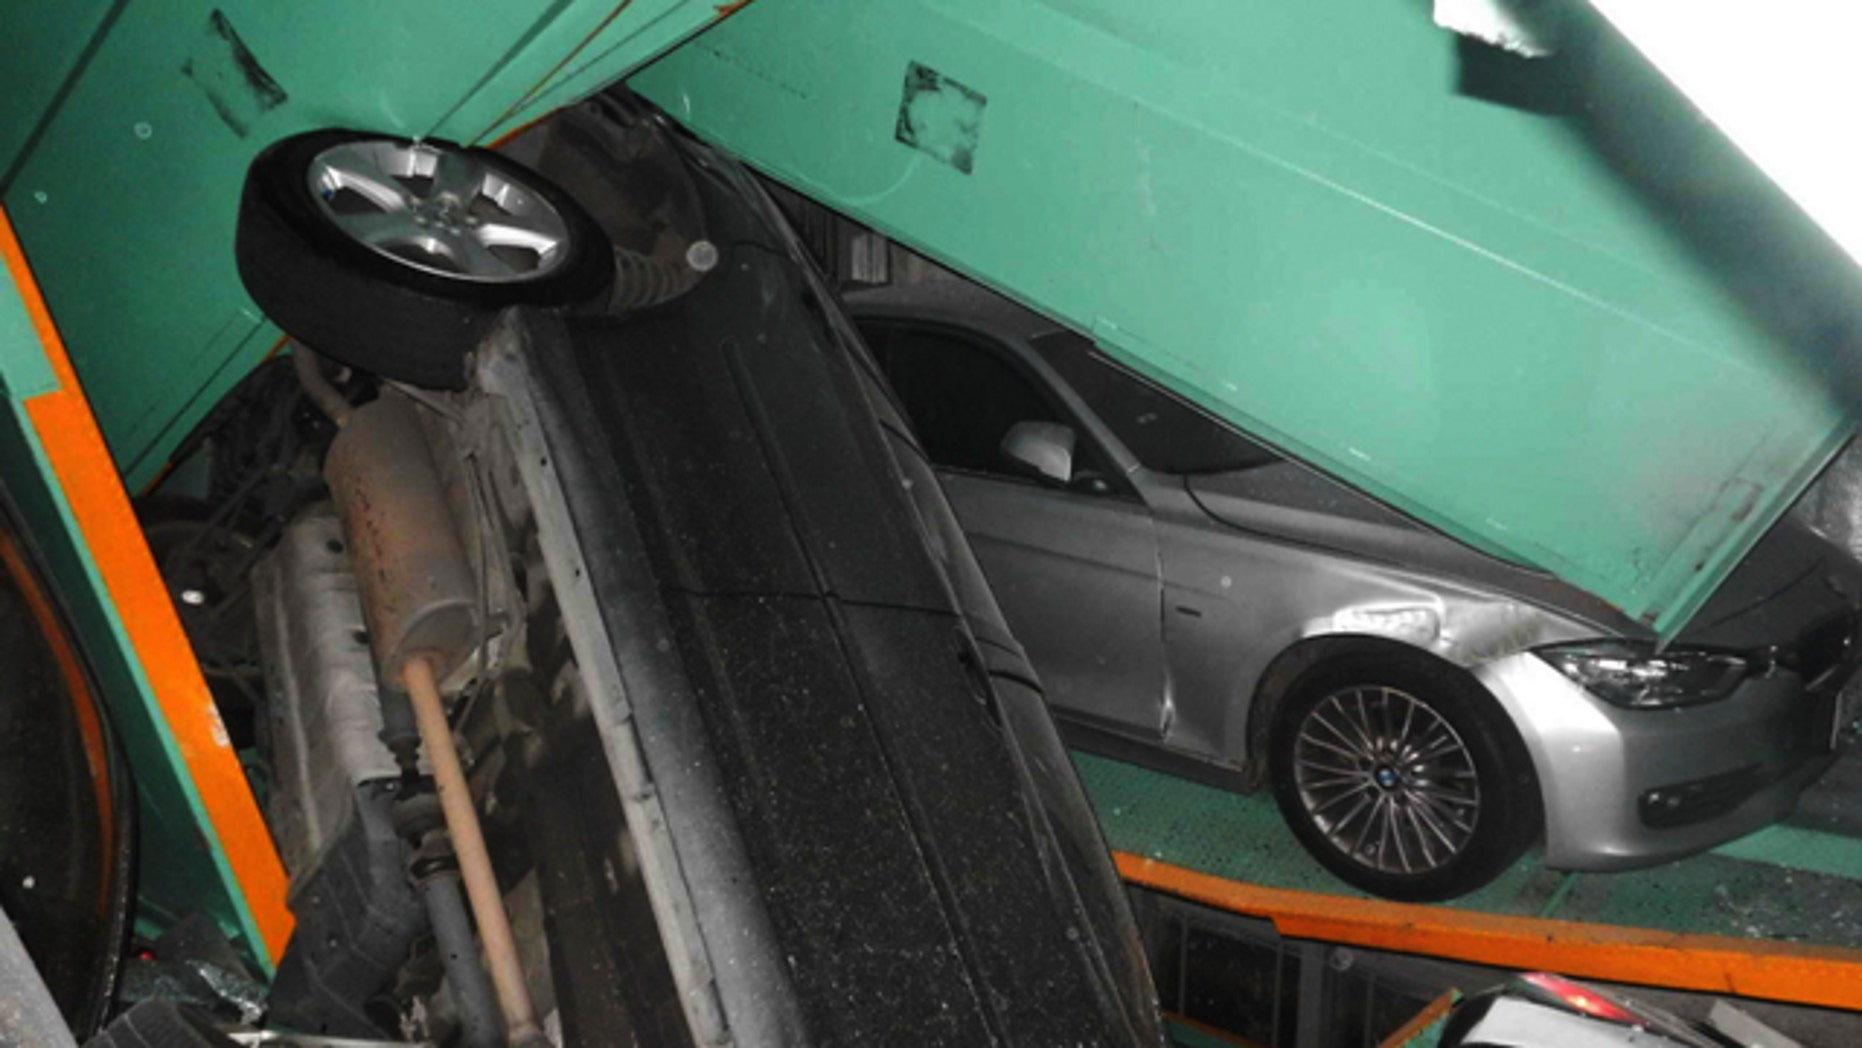 April 20, 2015: In a photo provided by the Taipei Fire Department, vehicles are seen piled on themselves in an automated parking tower after the lift system failed during the 6.3 magnitude earthquake that struck off the island's eastern coast. (Taipei Fire Department via AP)